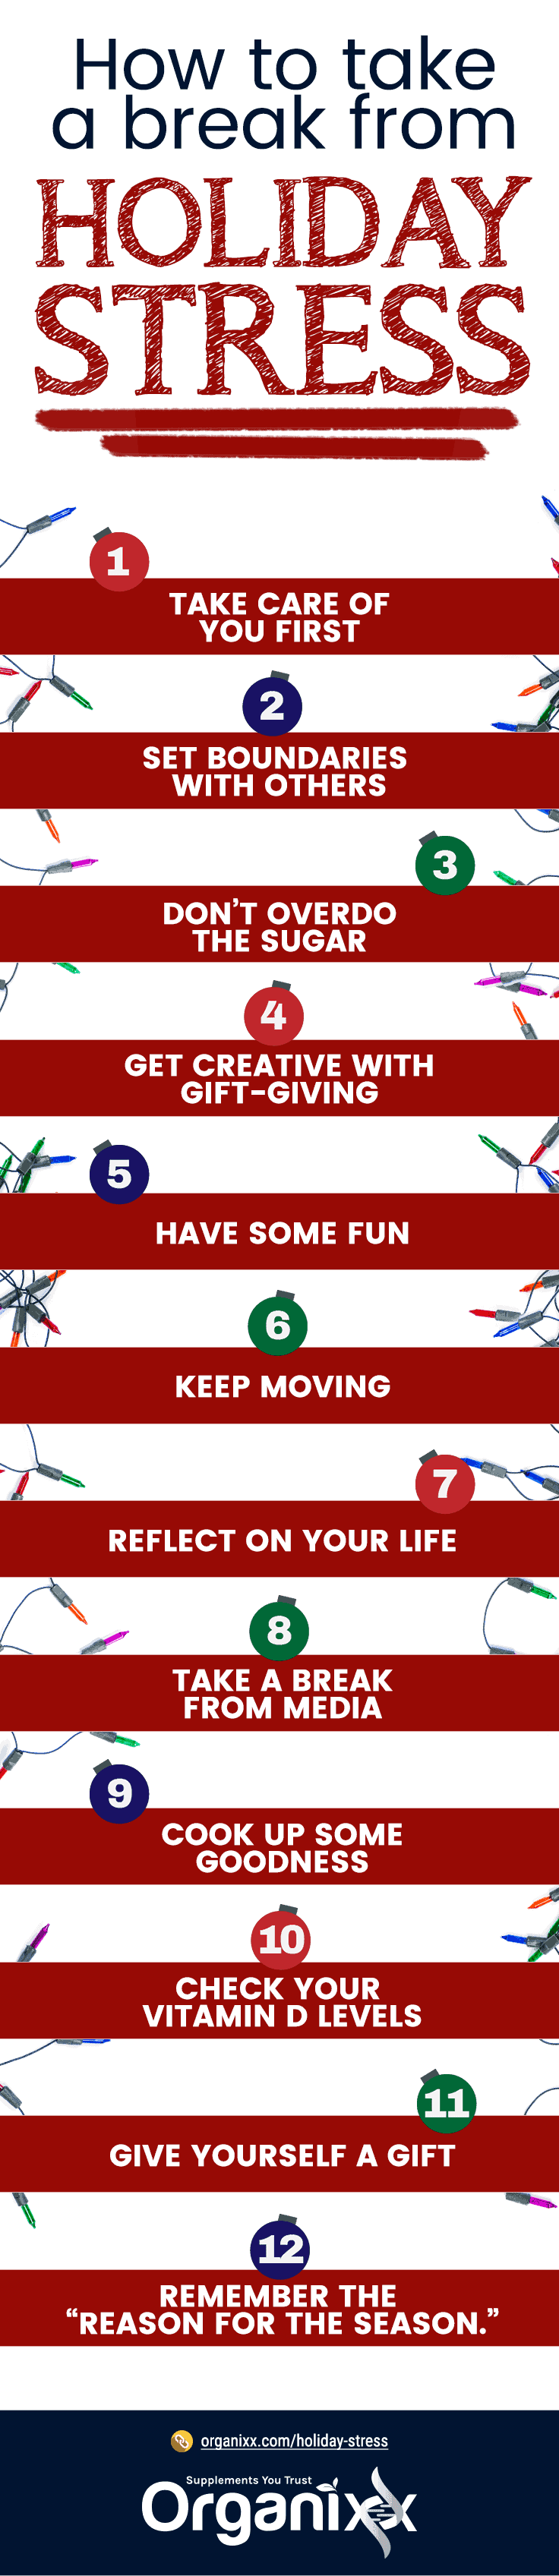 Holiday Stress Infographic